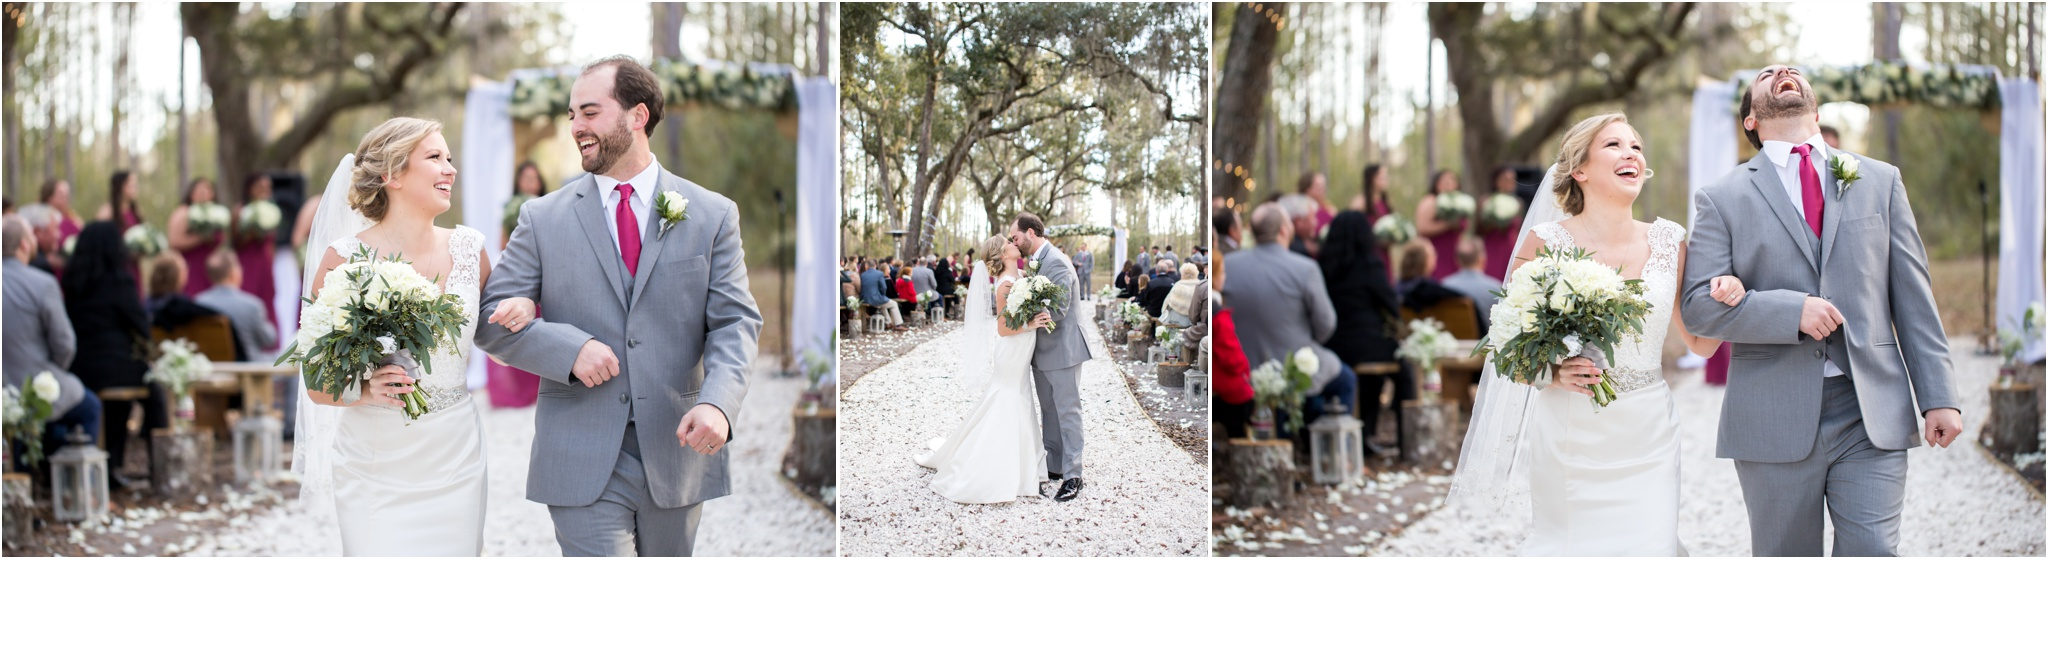 Rainey_Gregg_Photography_St._Simons_Island_Georgia_California_Wedding_Portrait_Photography_0530.jpg